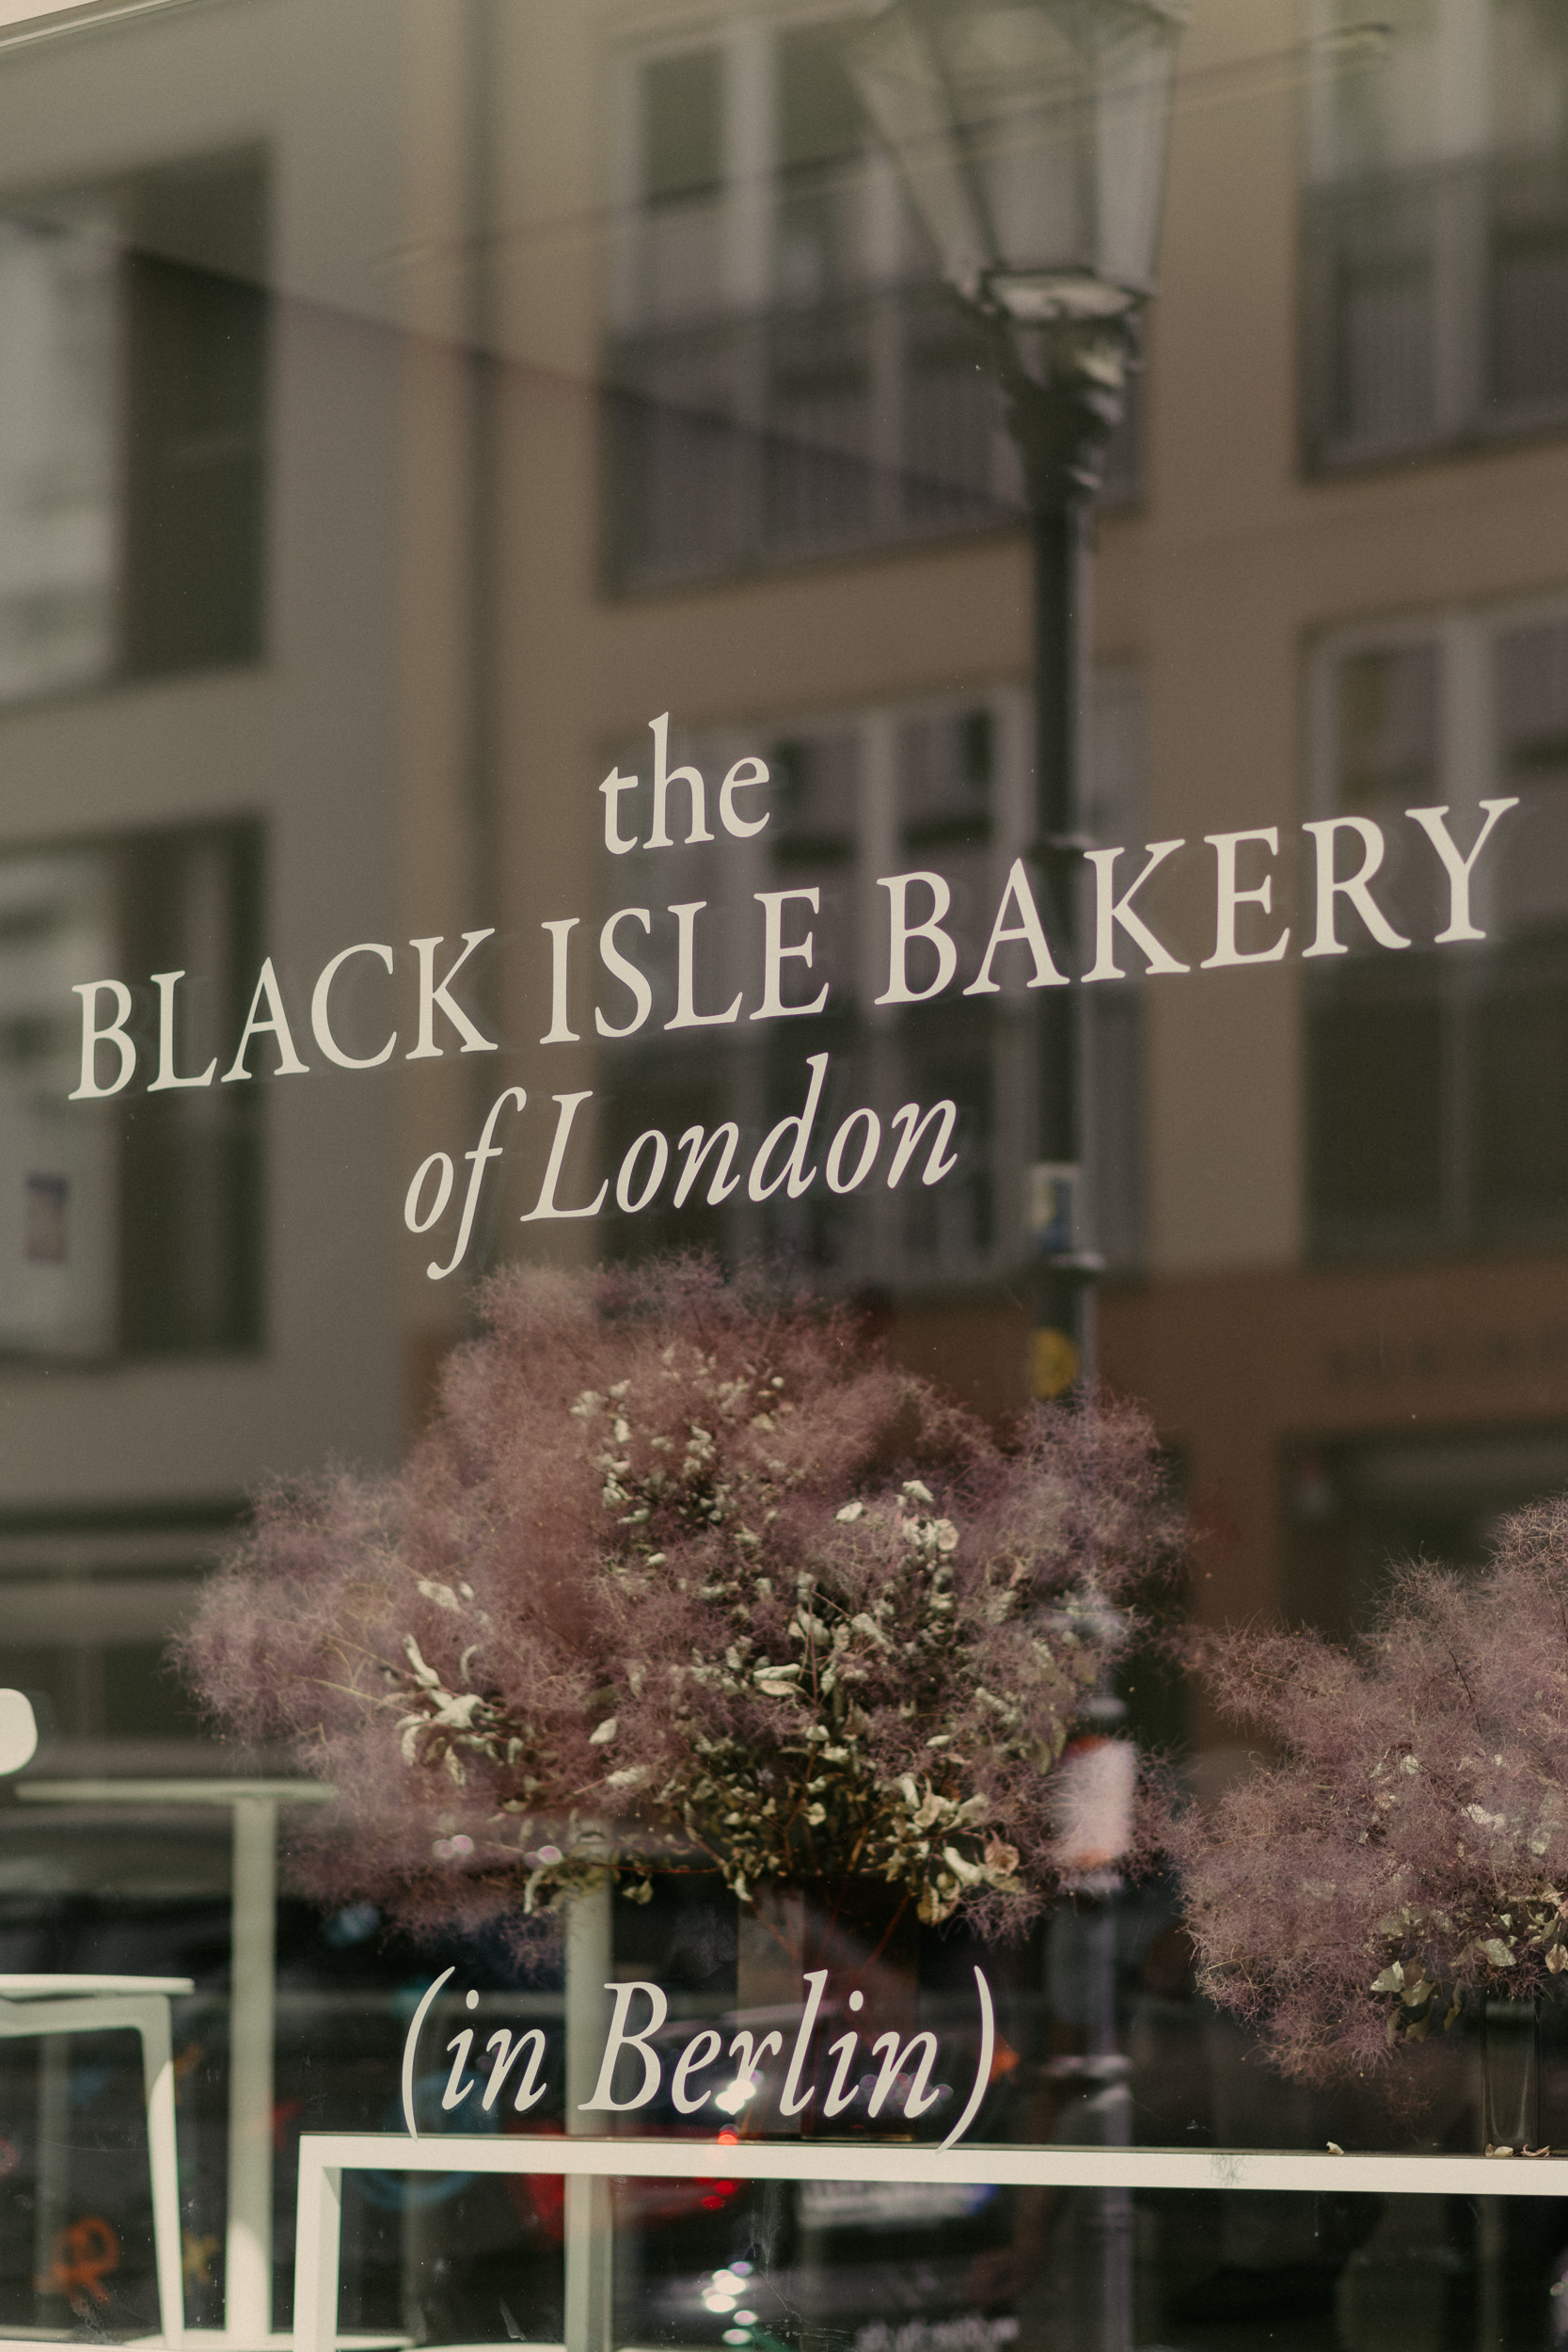 18-08-Black-Isle-Bakery-6452.jpg